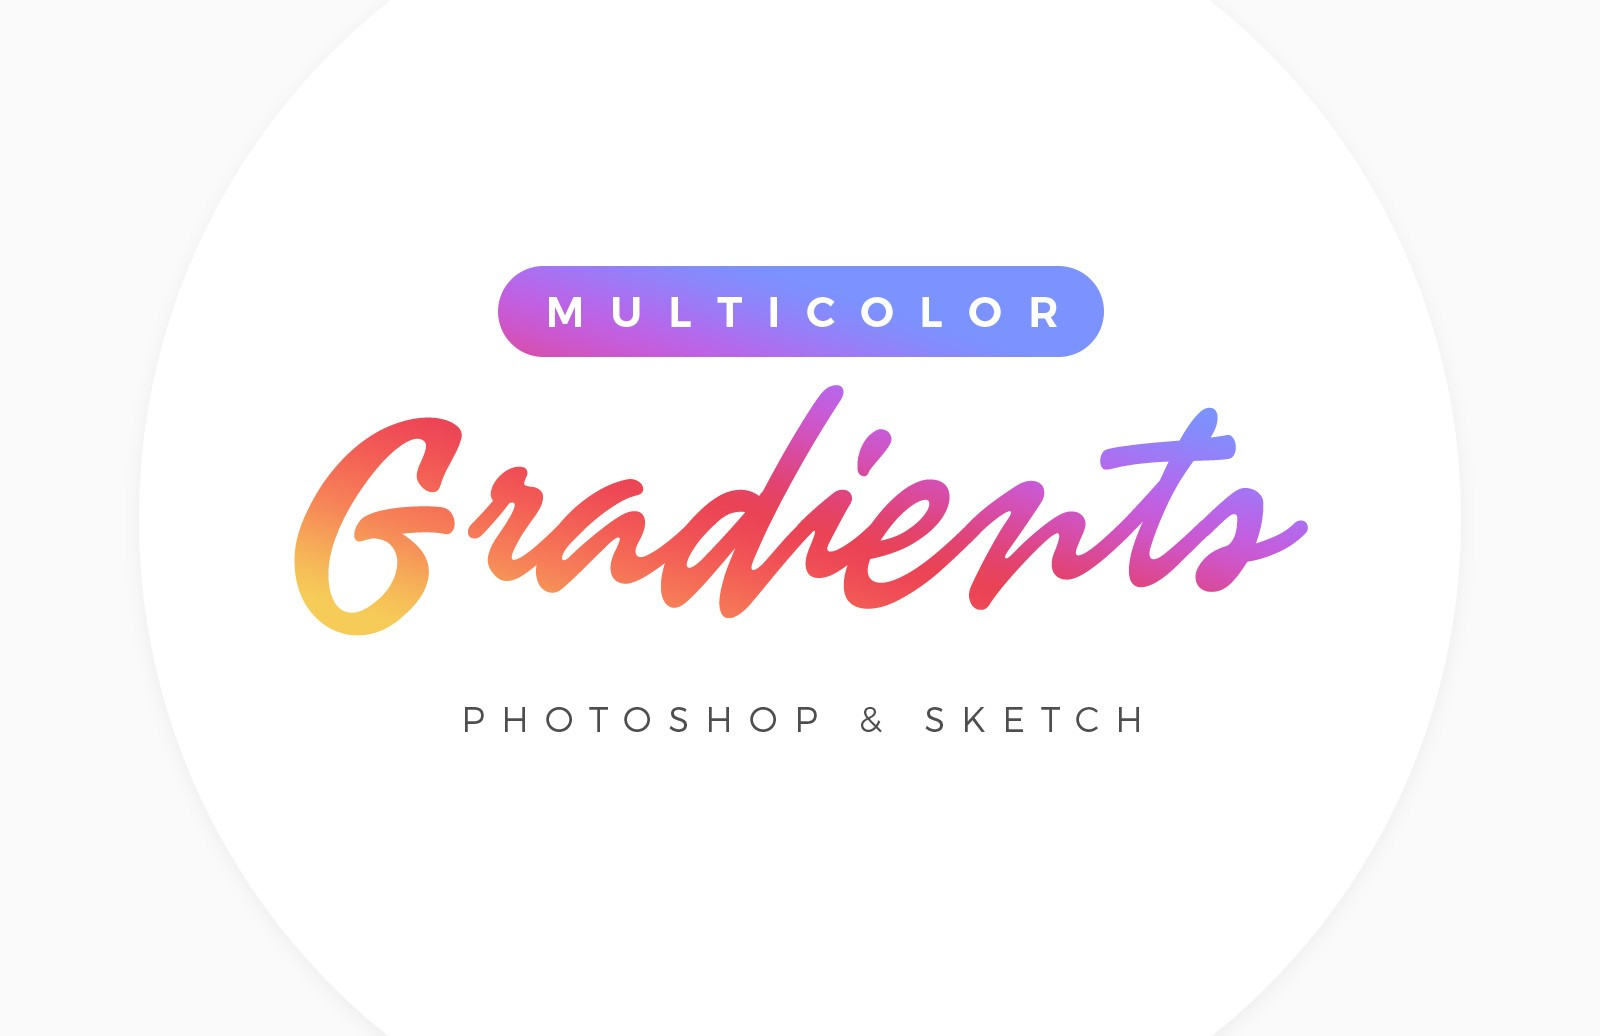 Multicolor Gradients Preview 1